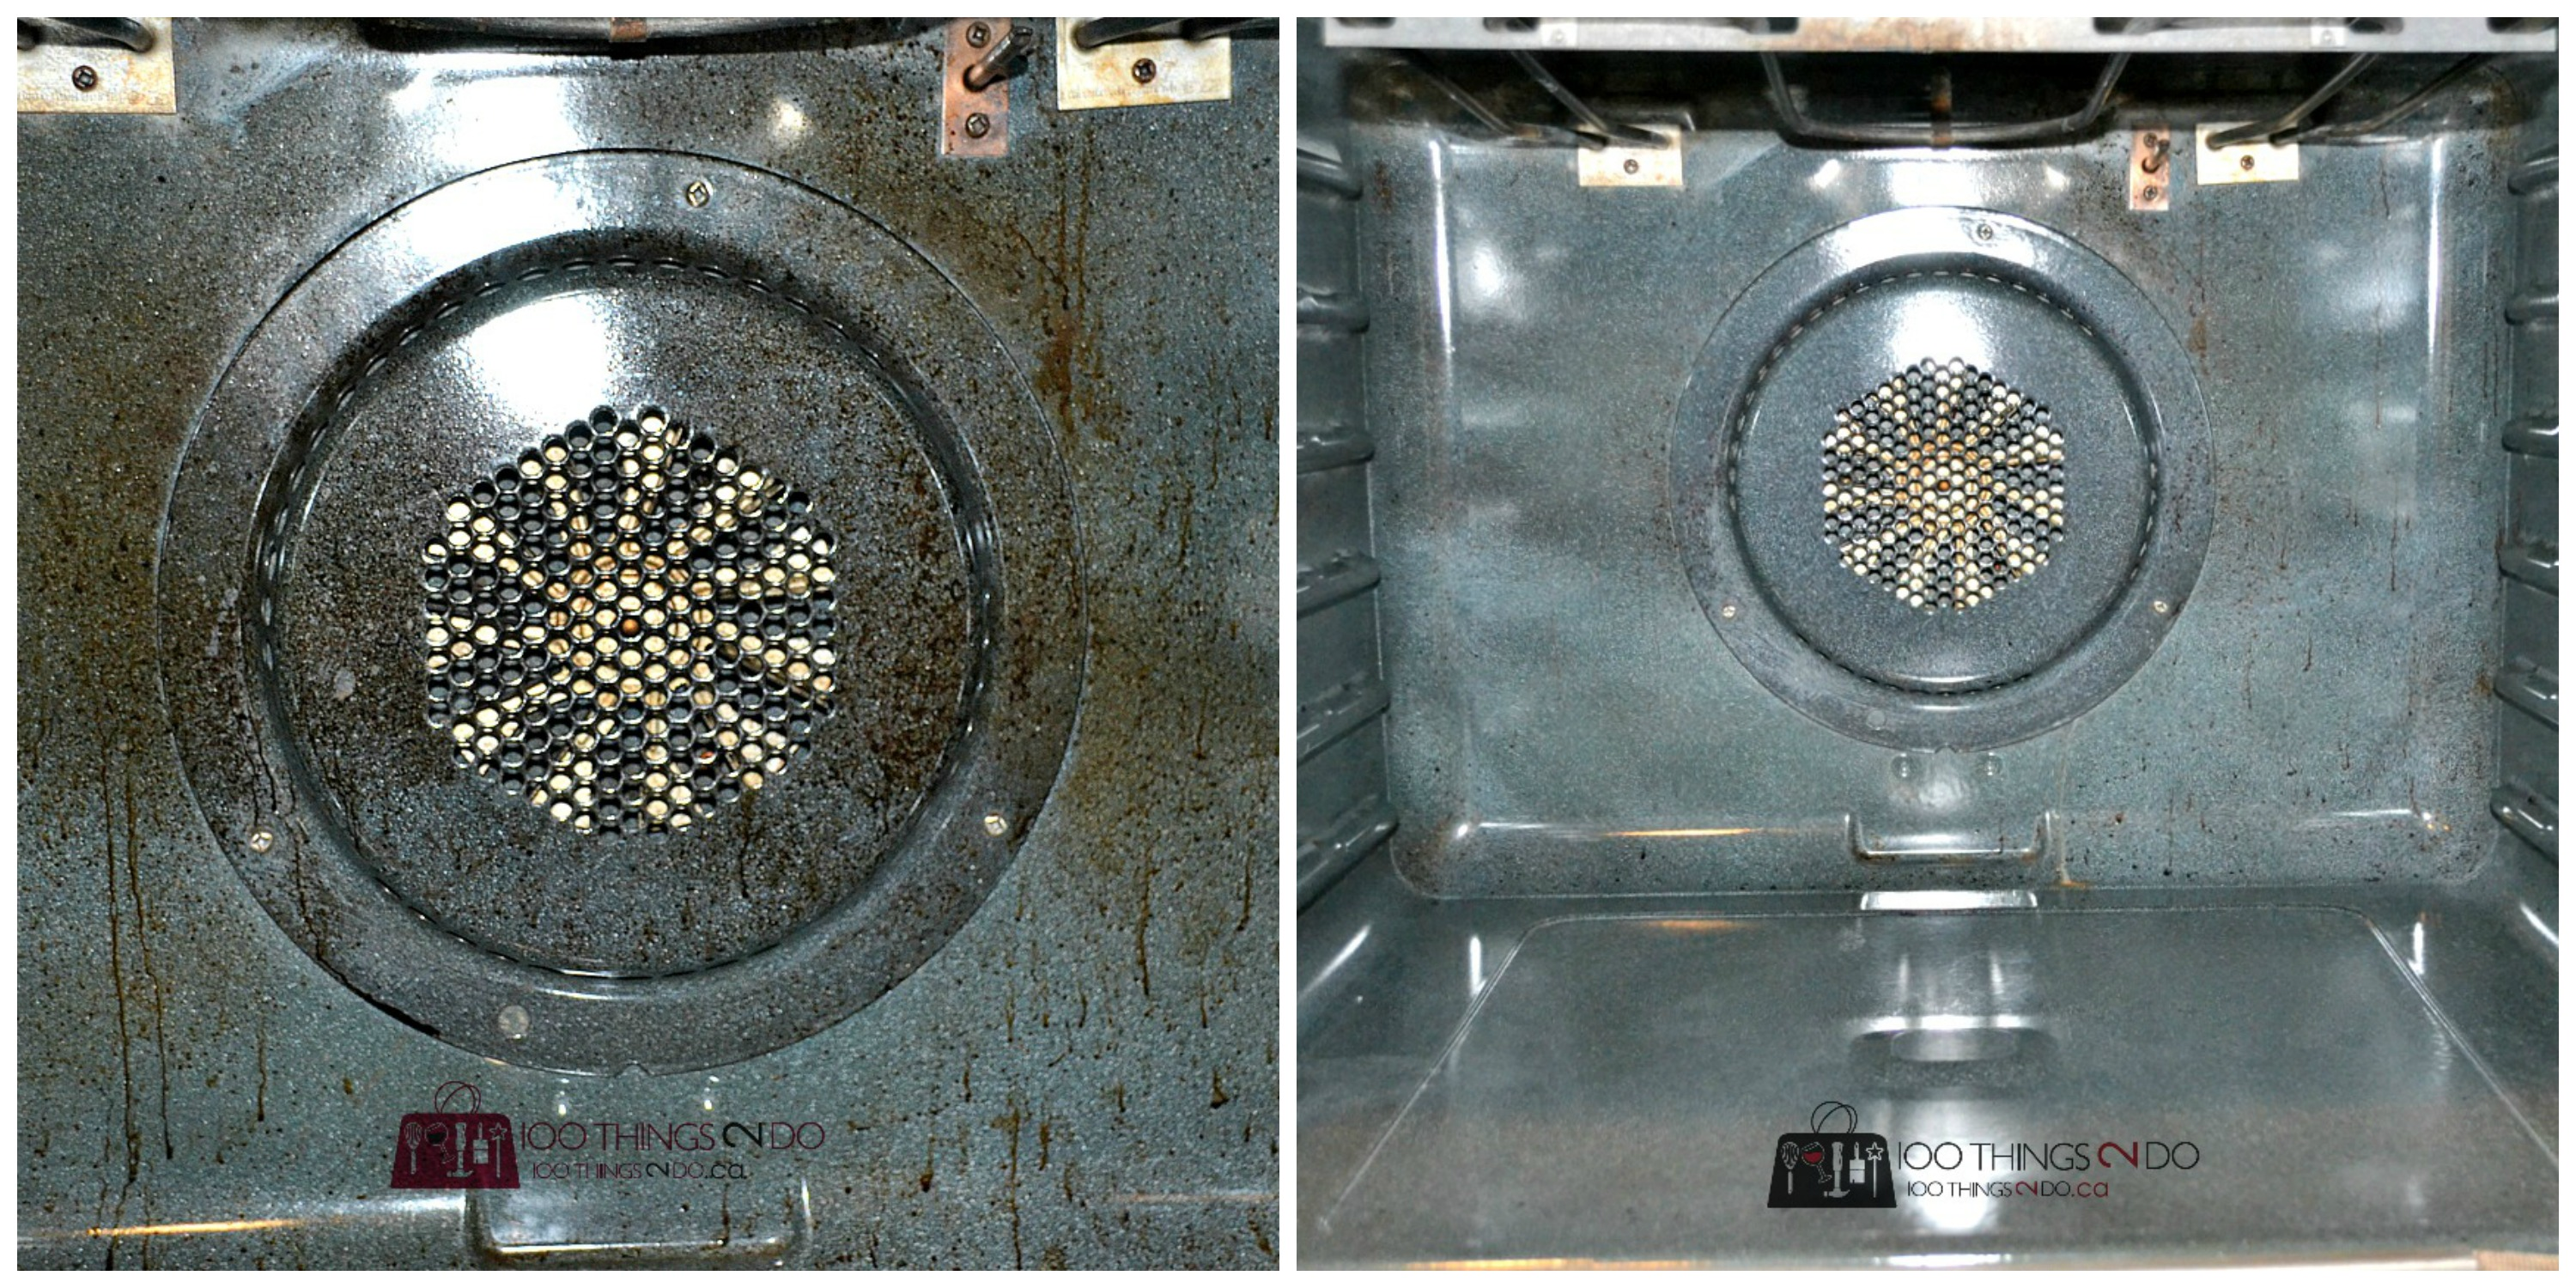 Before and after of filthy to clean oven